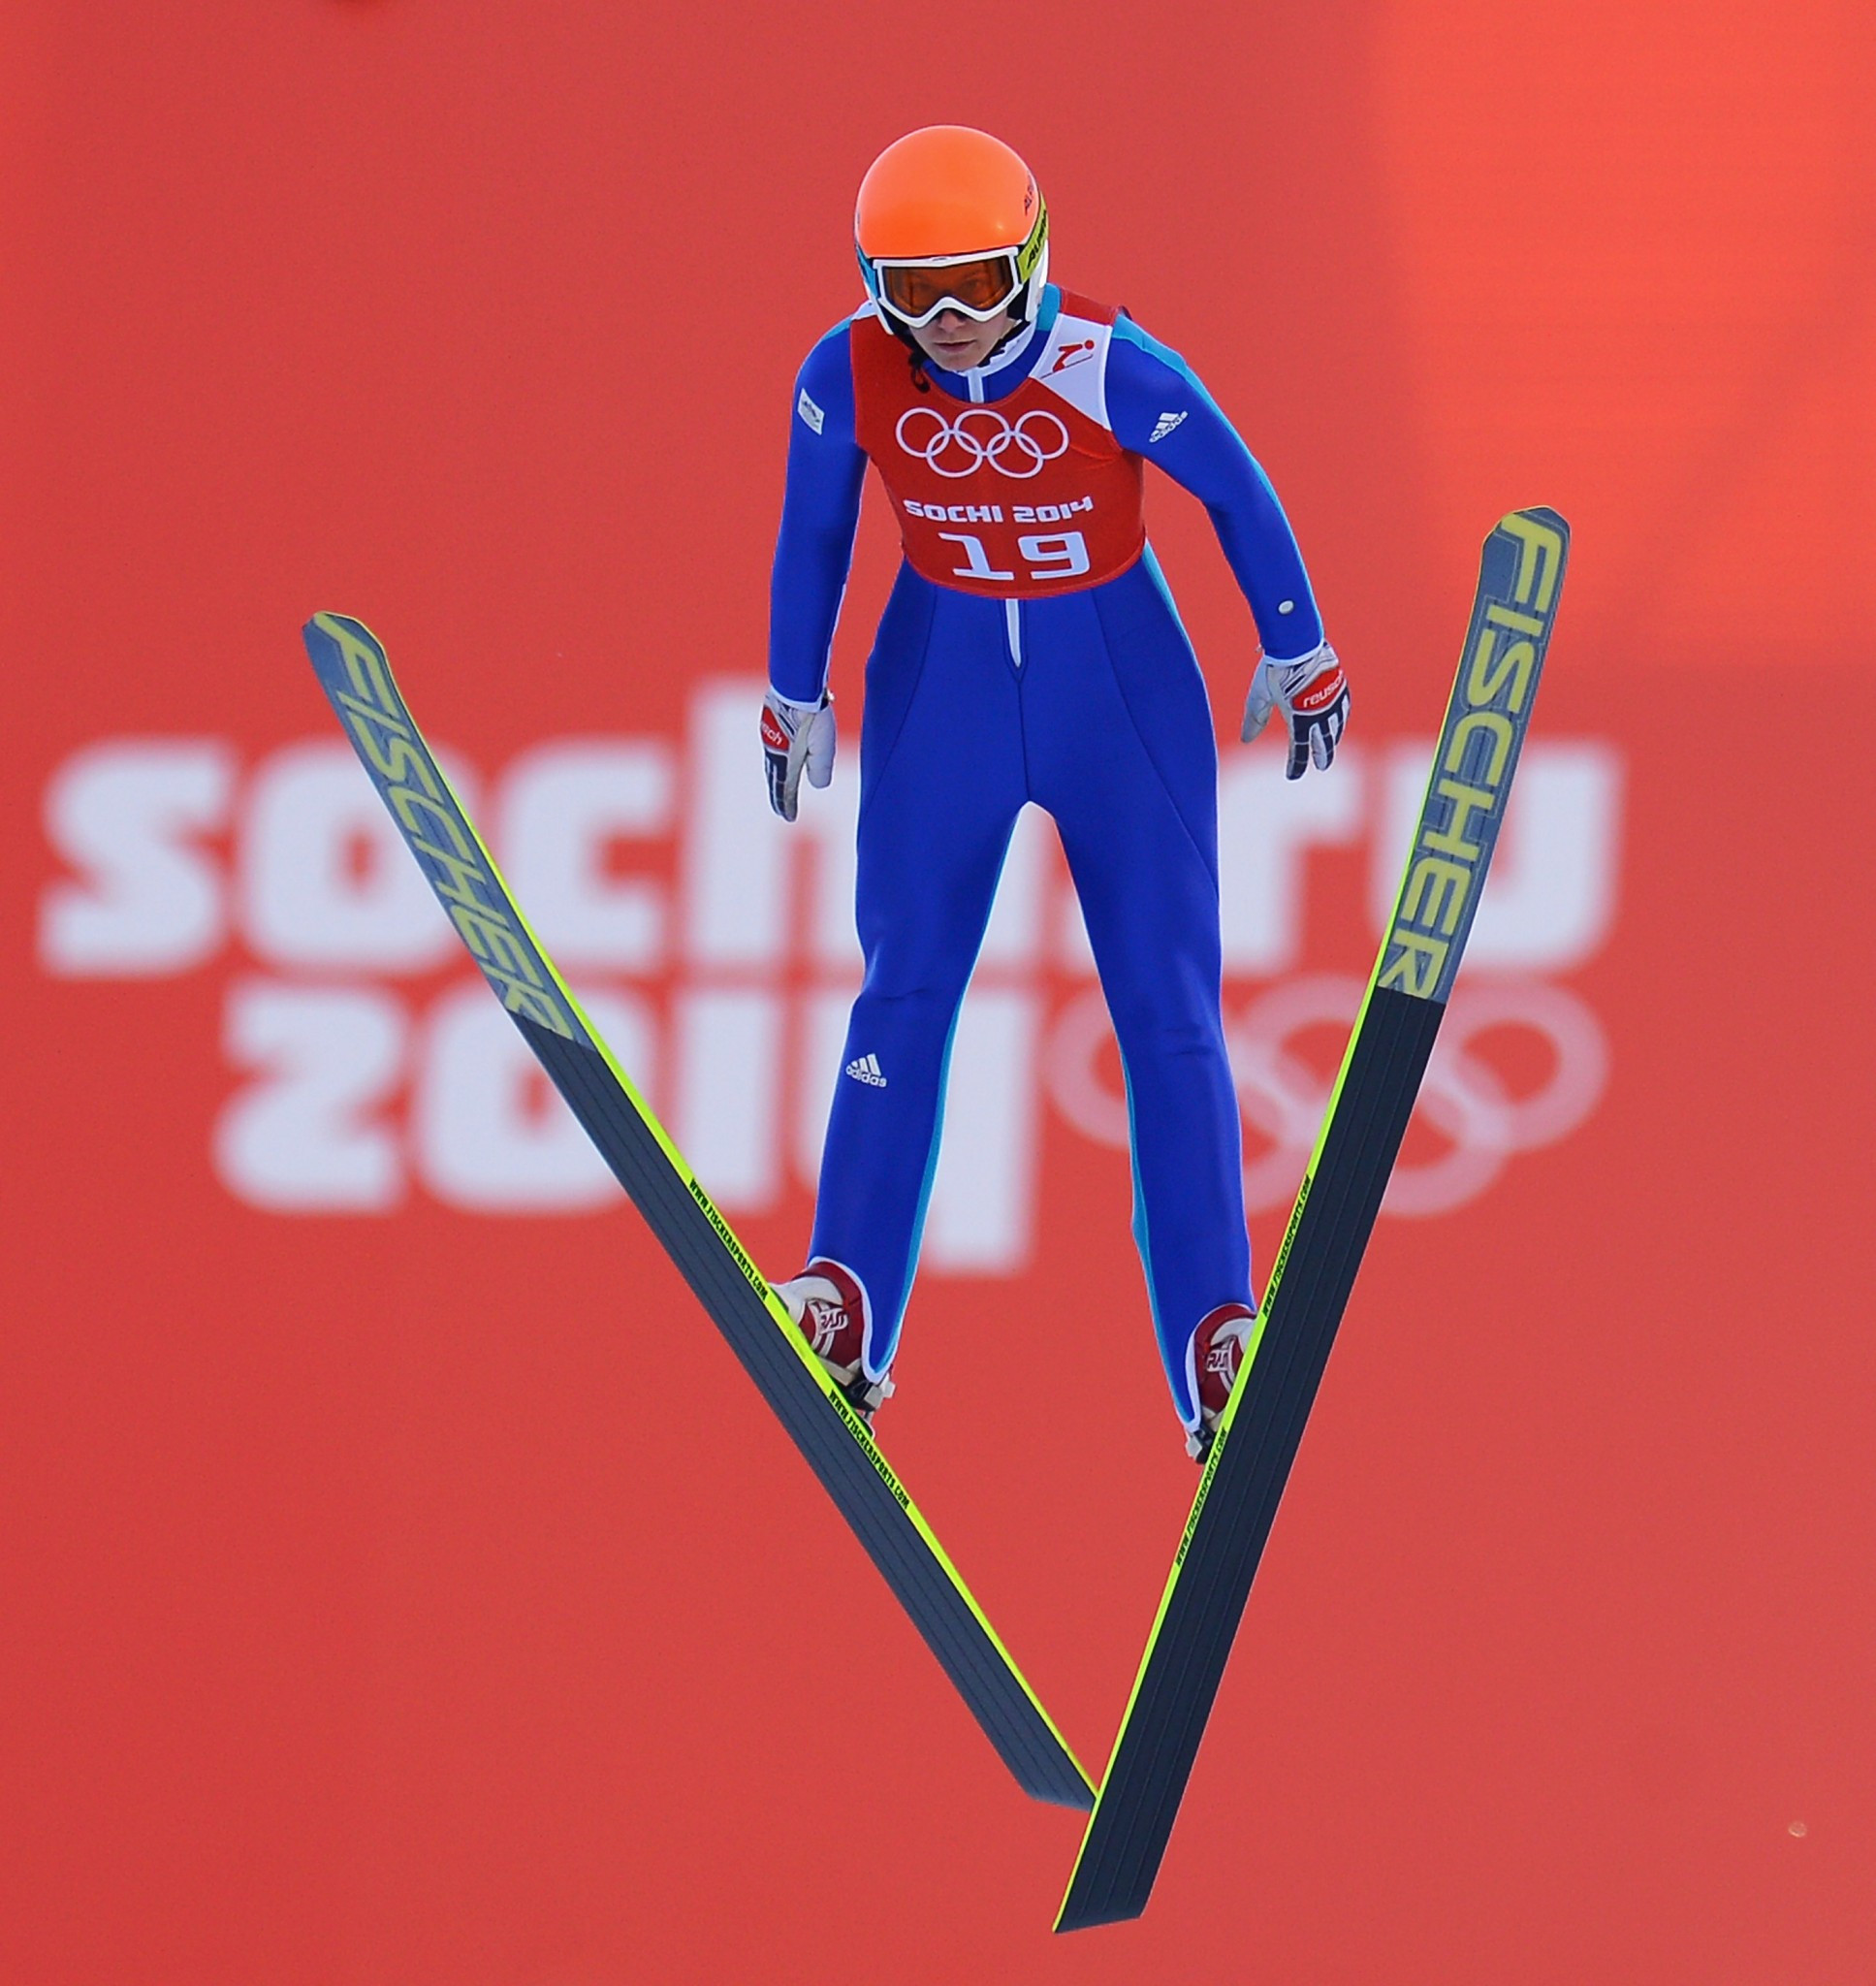 Eva Logar competed at the Sochi 2014 Winter Olympics ©Getty Images